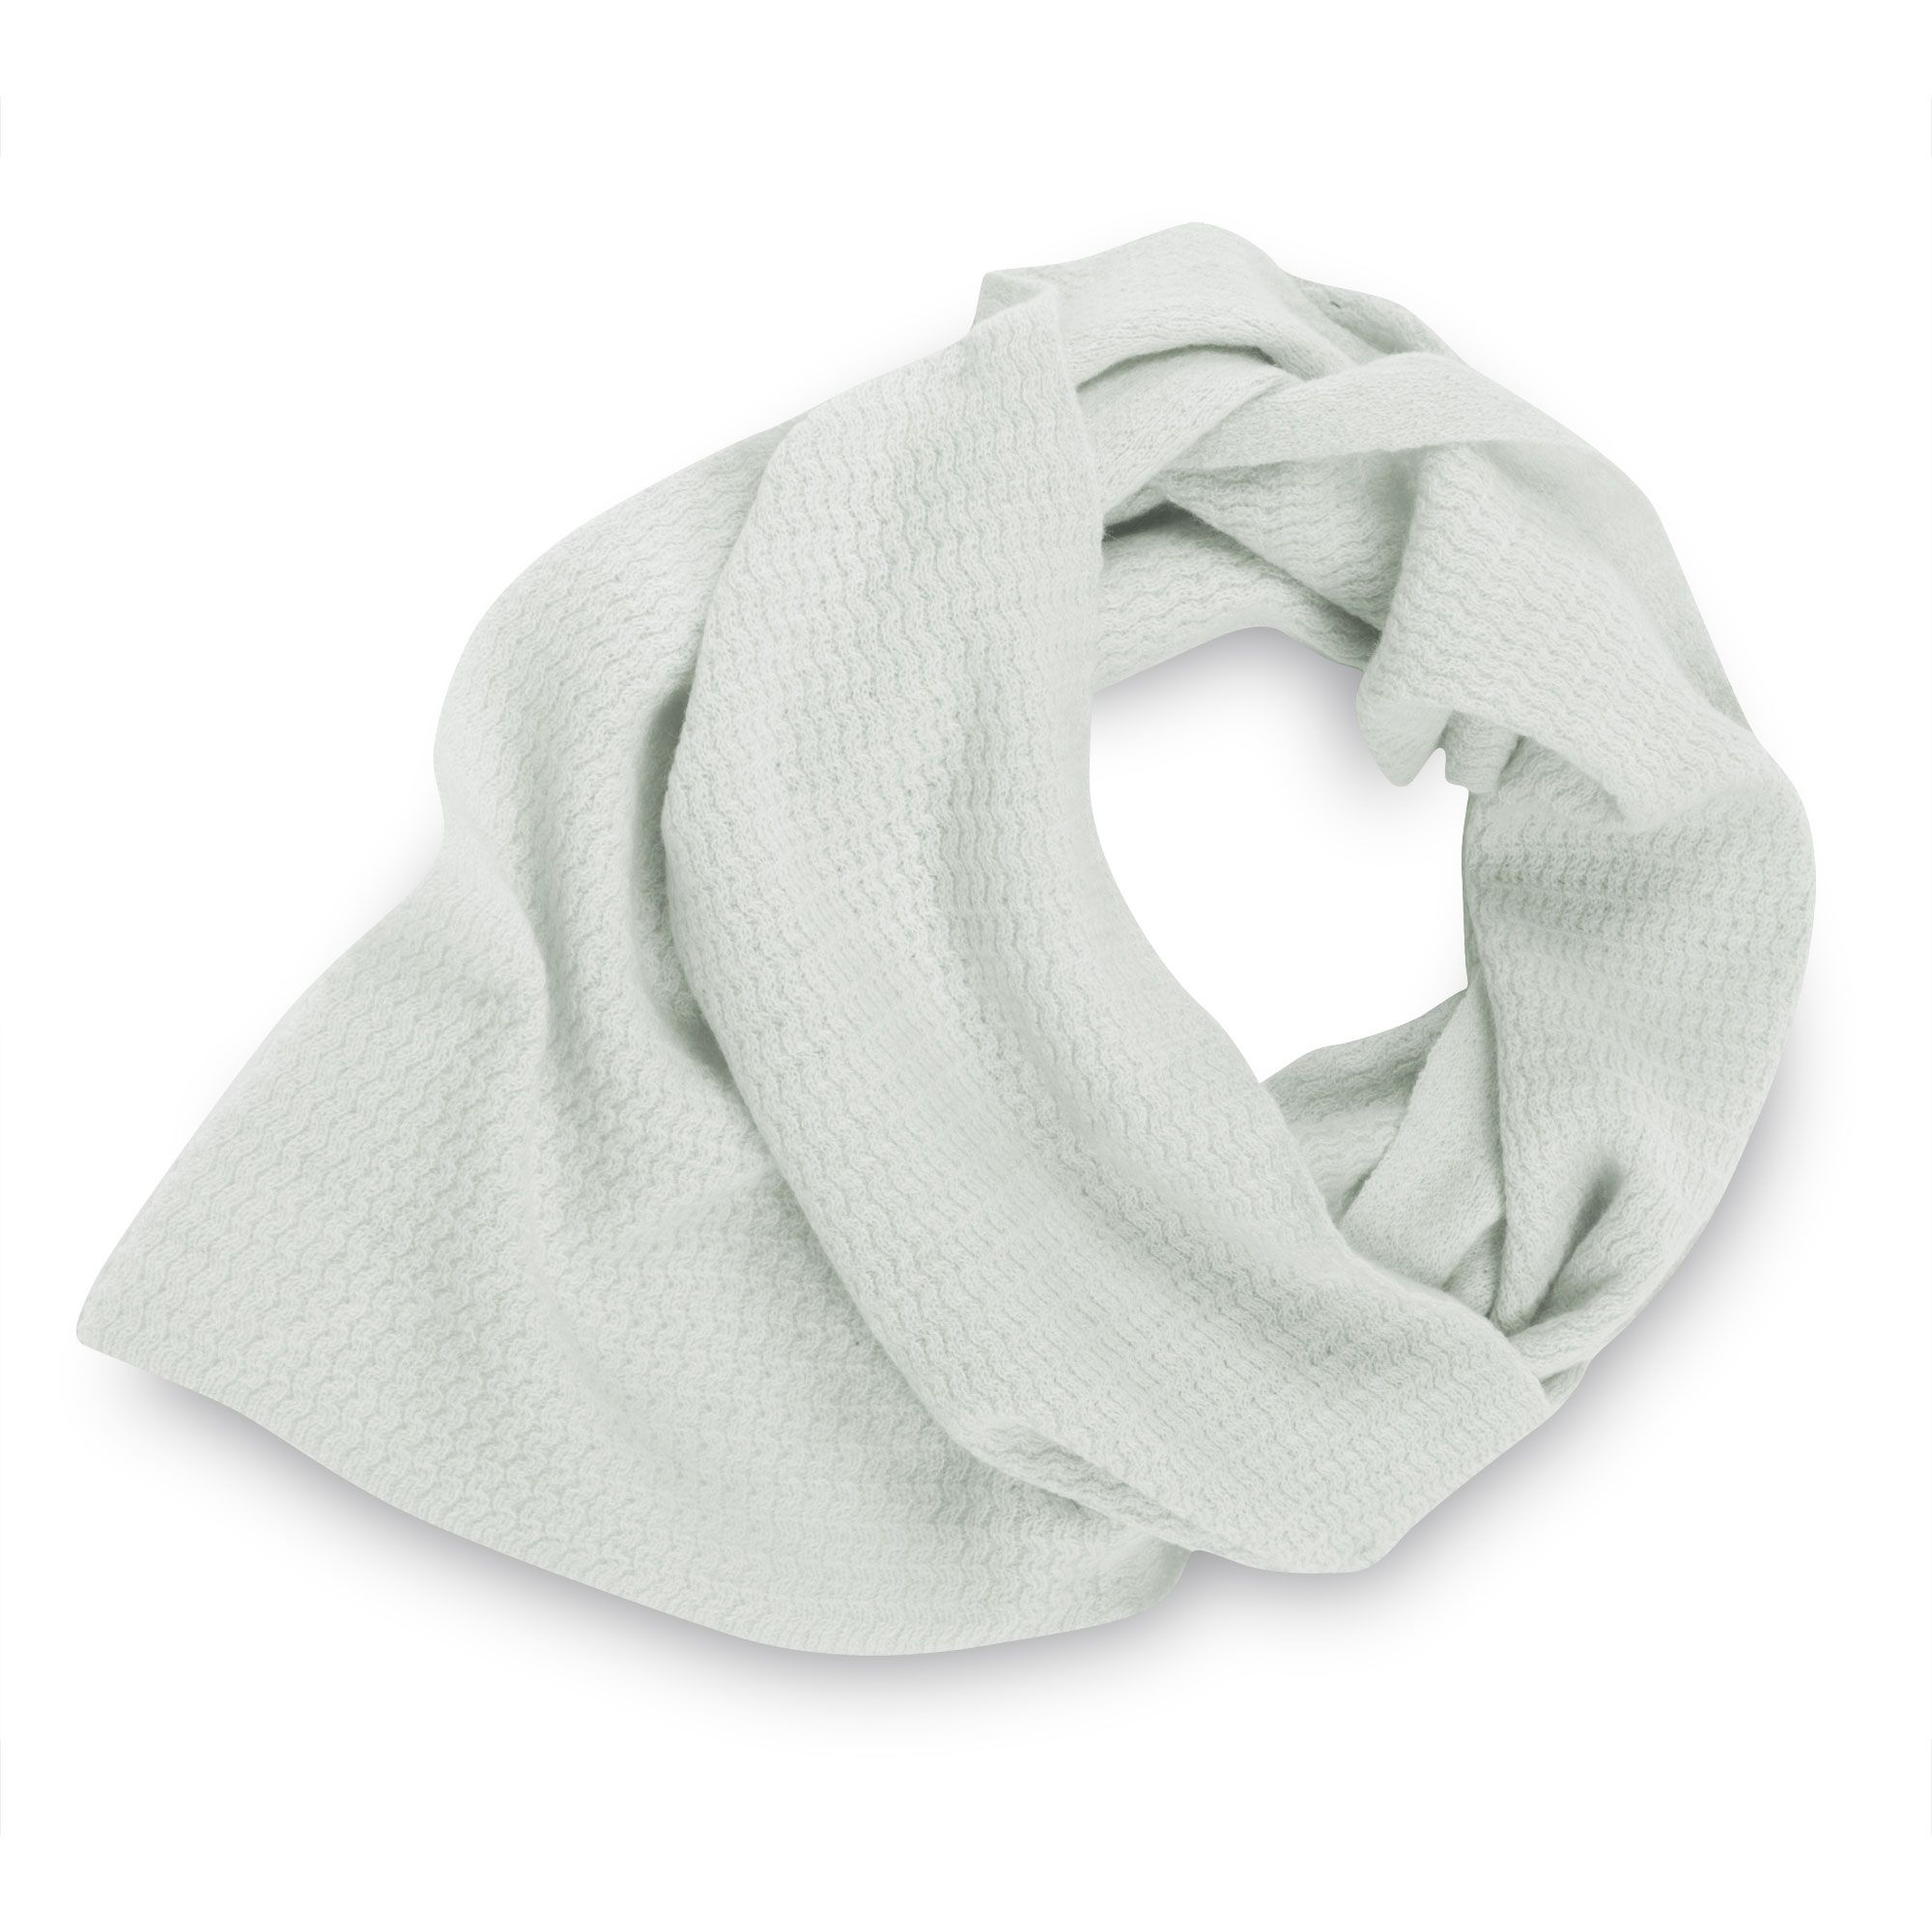 Women's Circle Scarf | Ibex Lambswool Cashmere Infinity Scarf